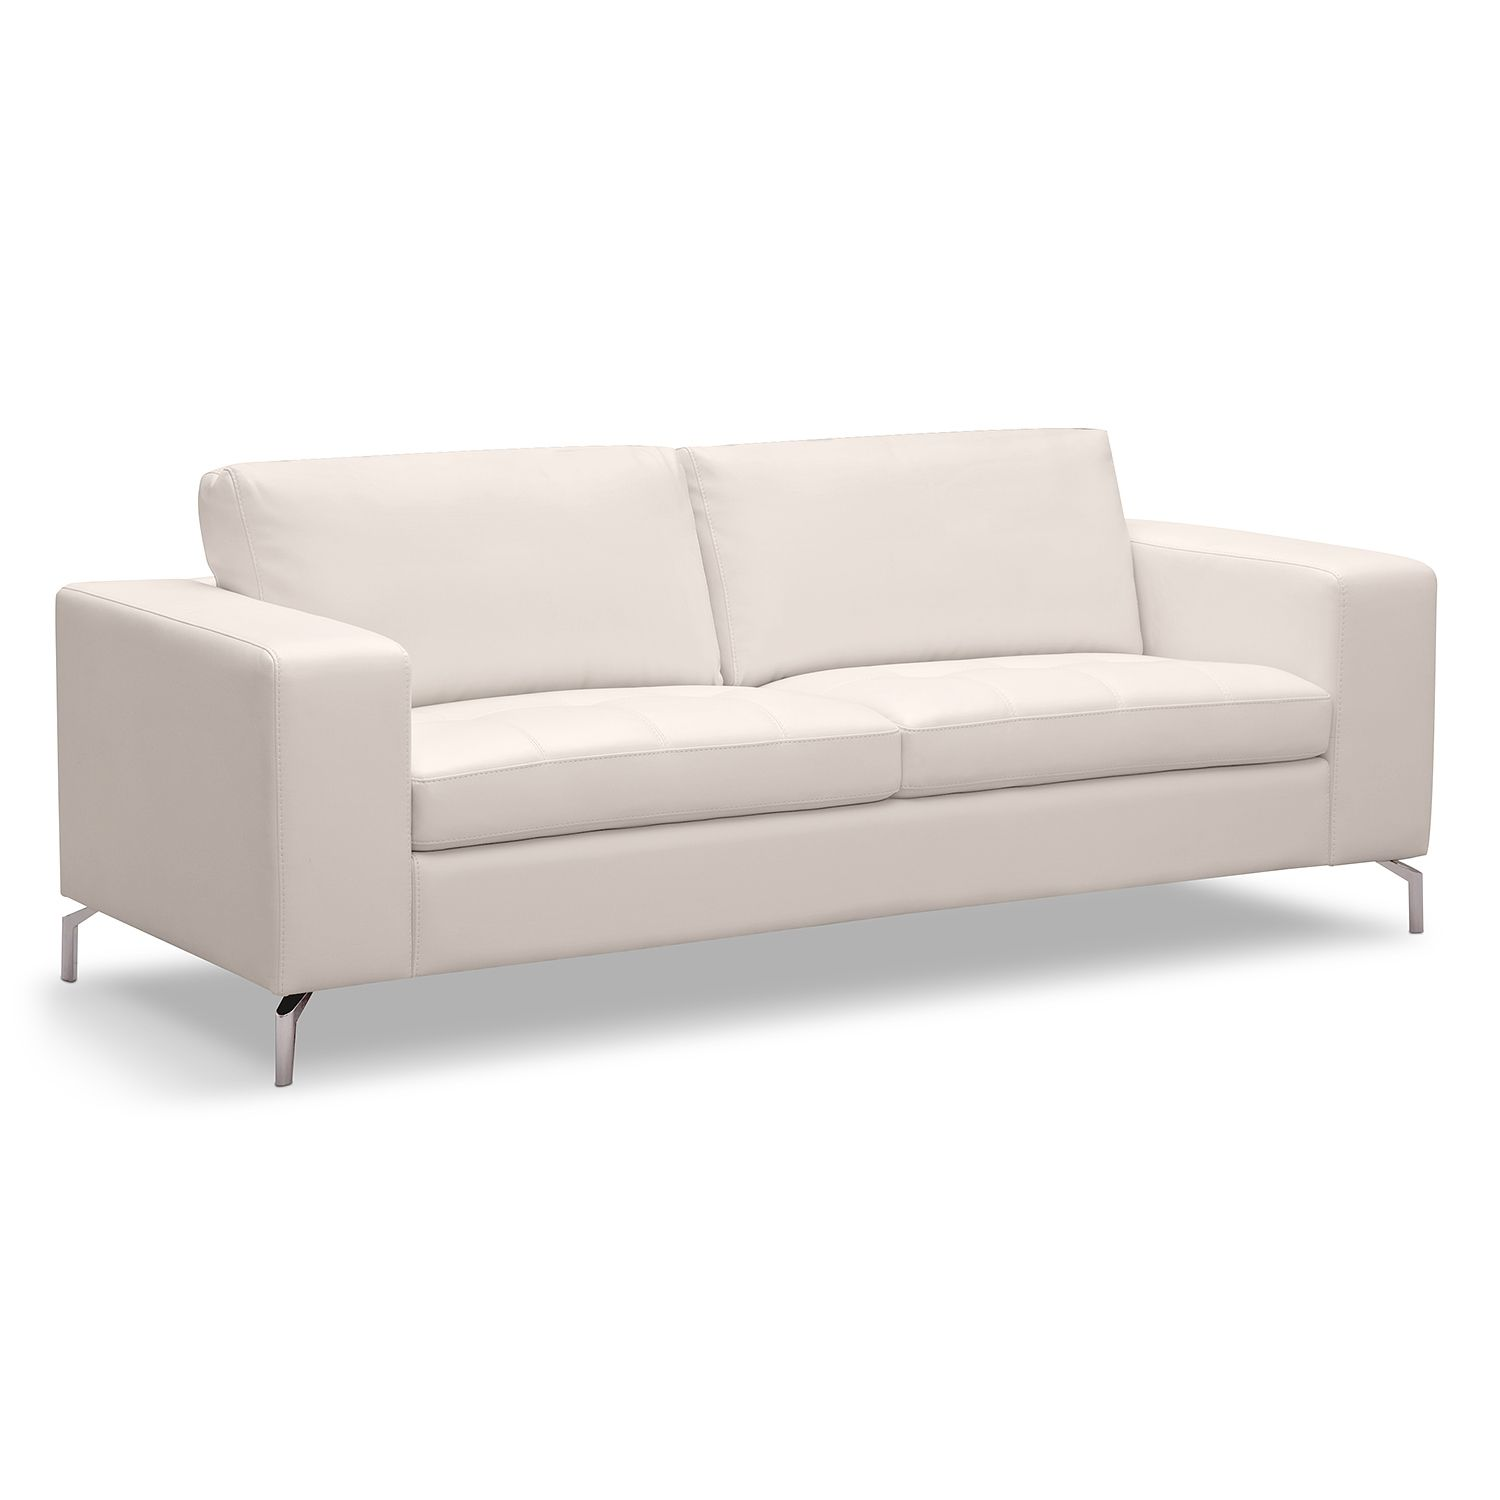 Casino Leather Sofa American Signature Furniture Main Living - American signature sofas